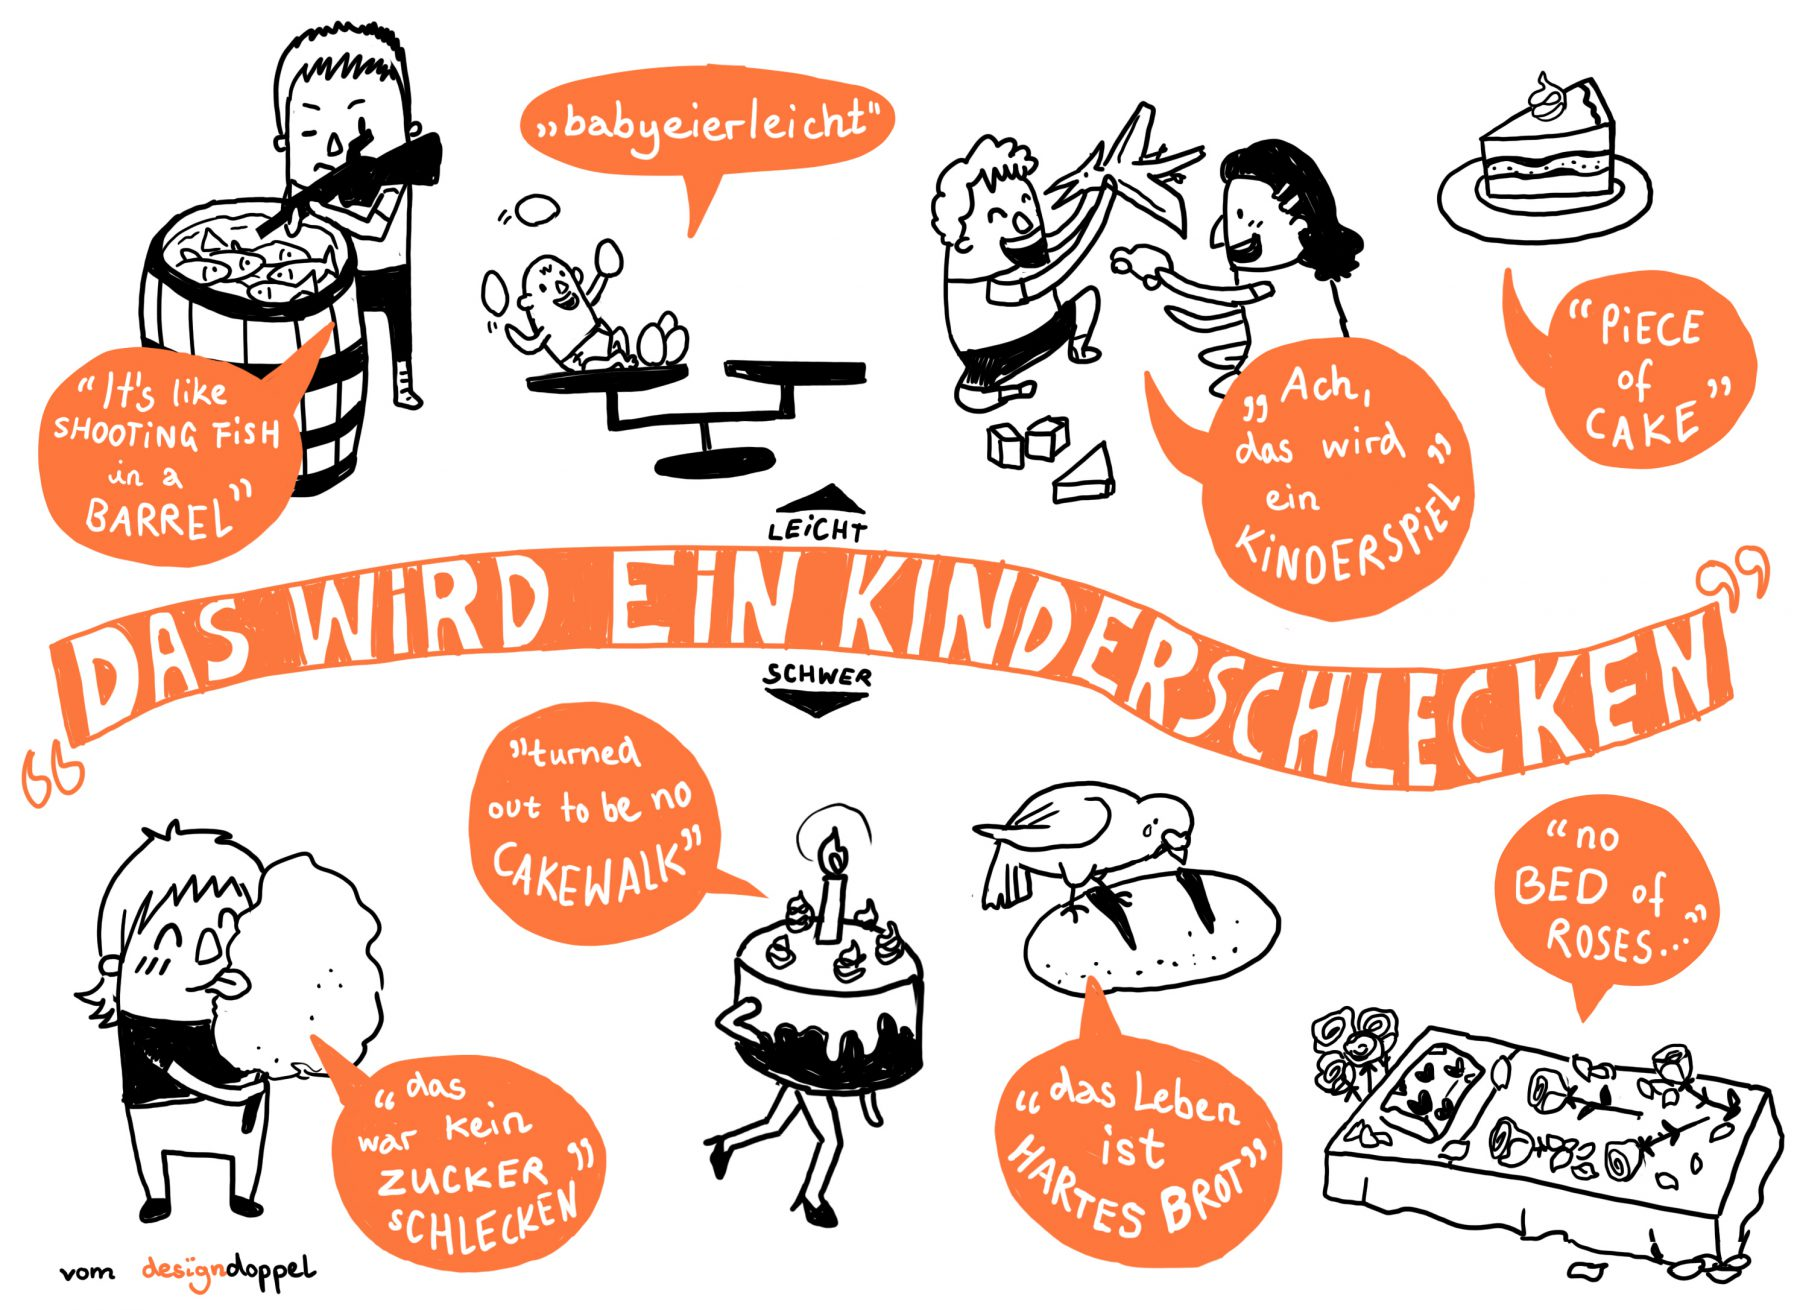 Weekly Graphic Recording Sprichworte Redewendungen Kinderschleck